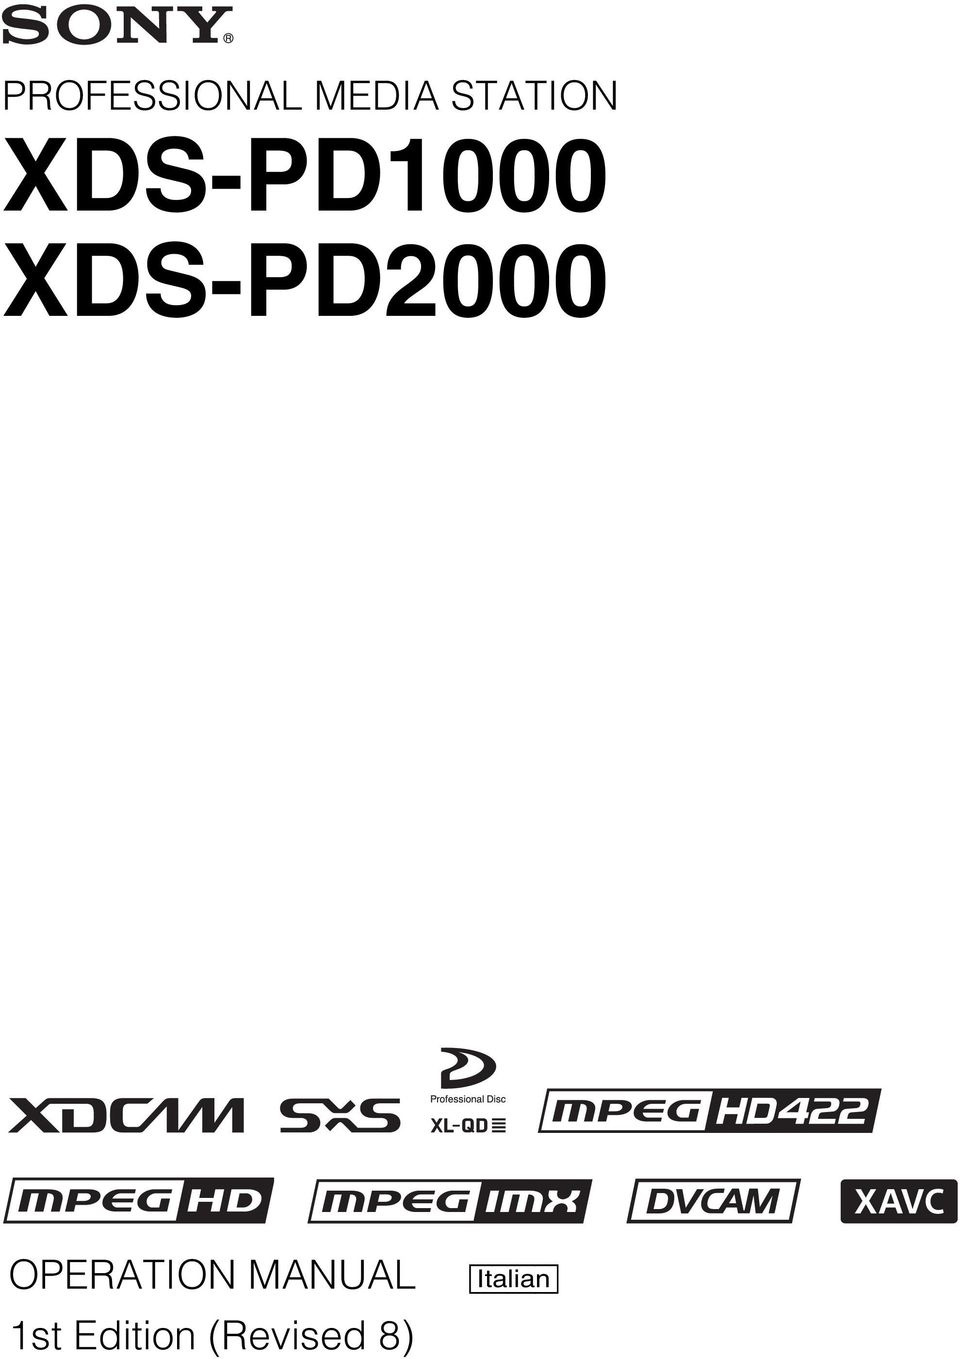 XDS-PD2000 OPERATION